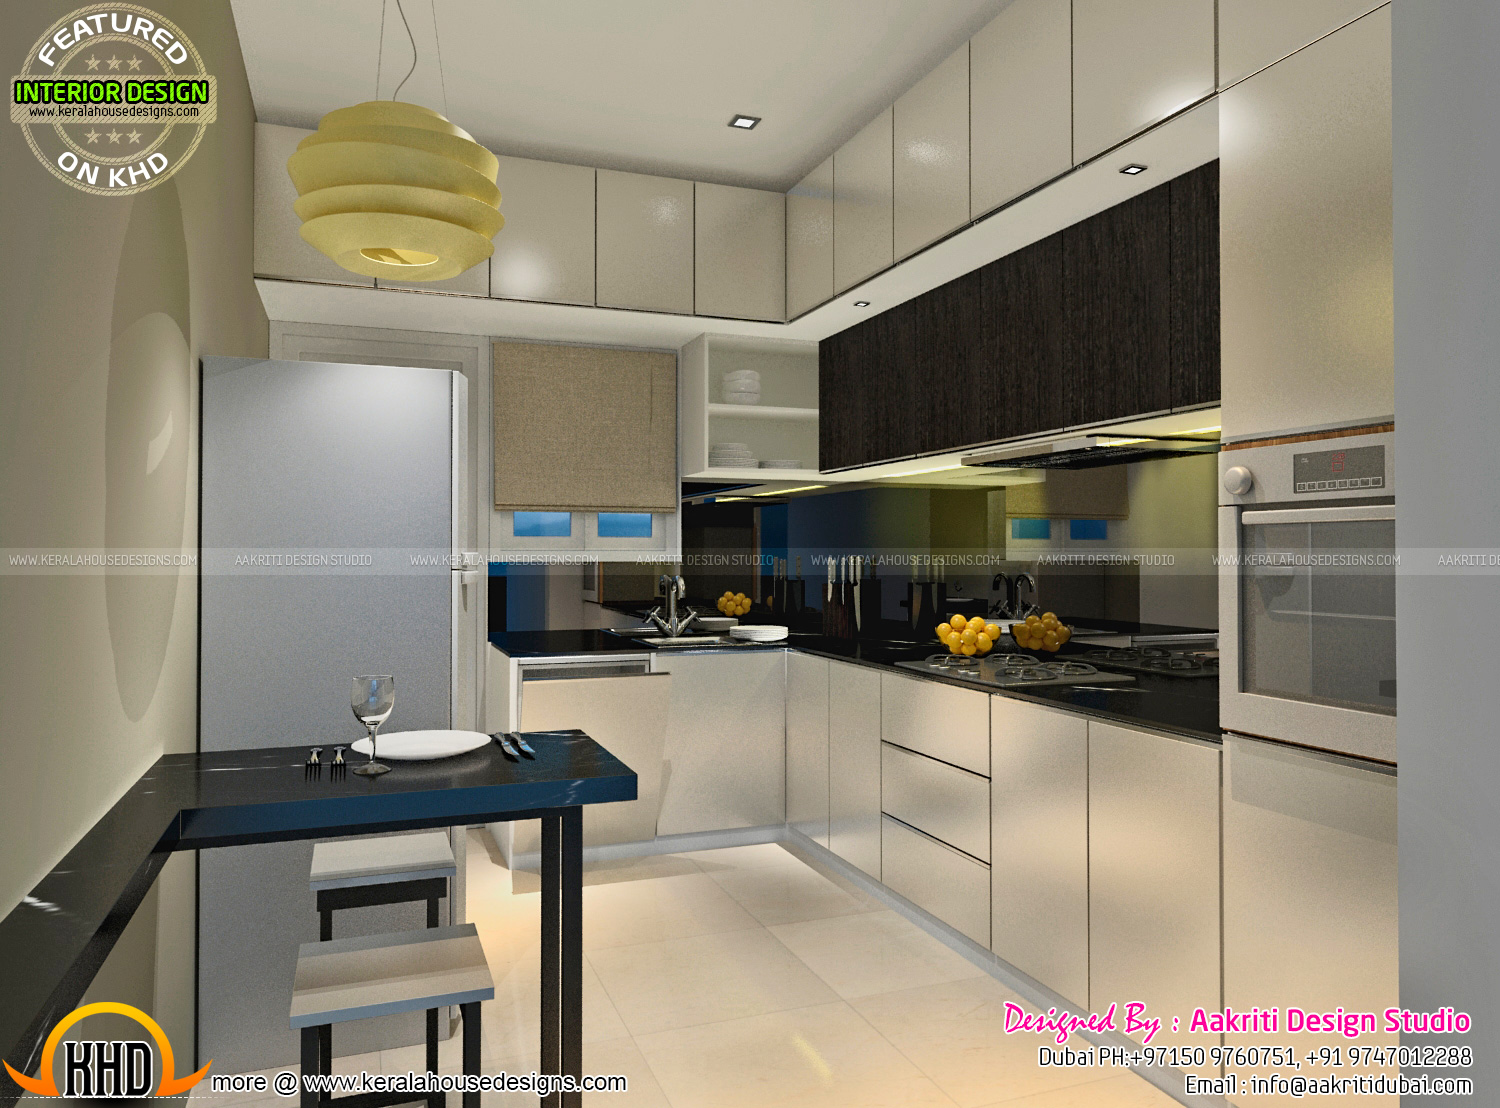 Dining kitchen wash area interior kerala home design for Home design kitchen decor